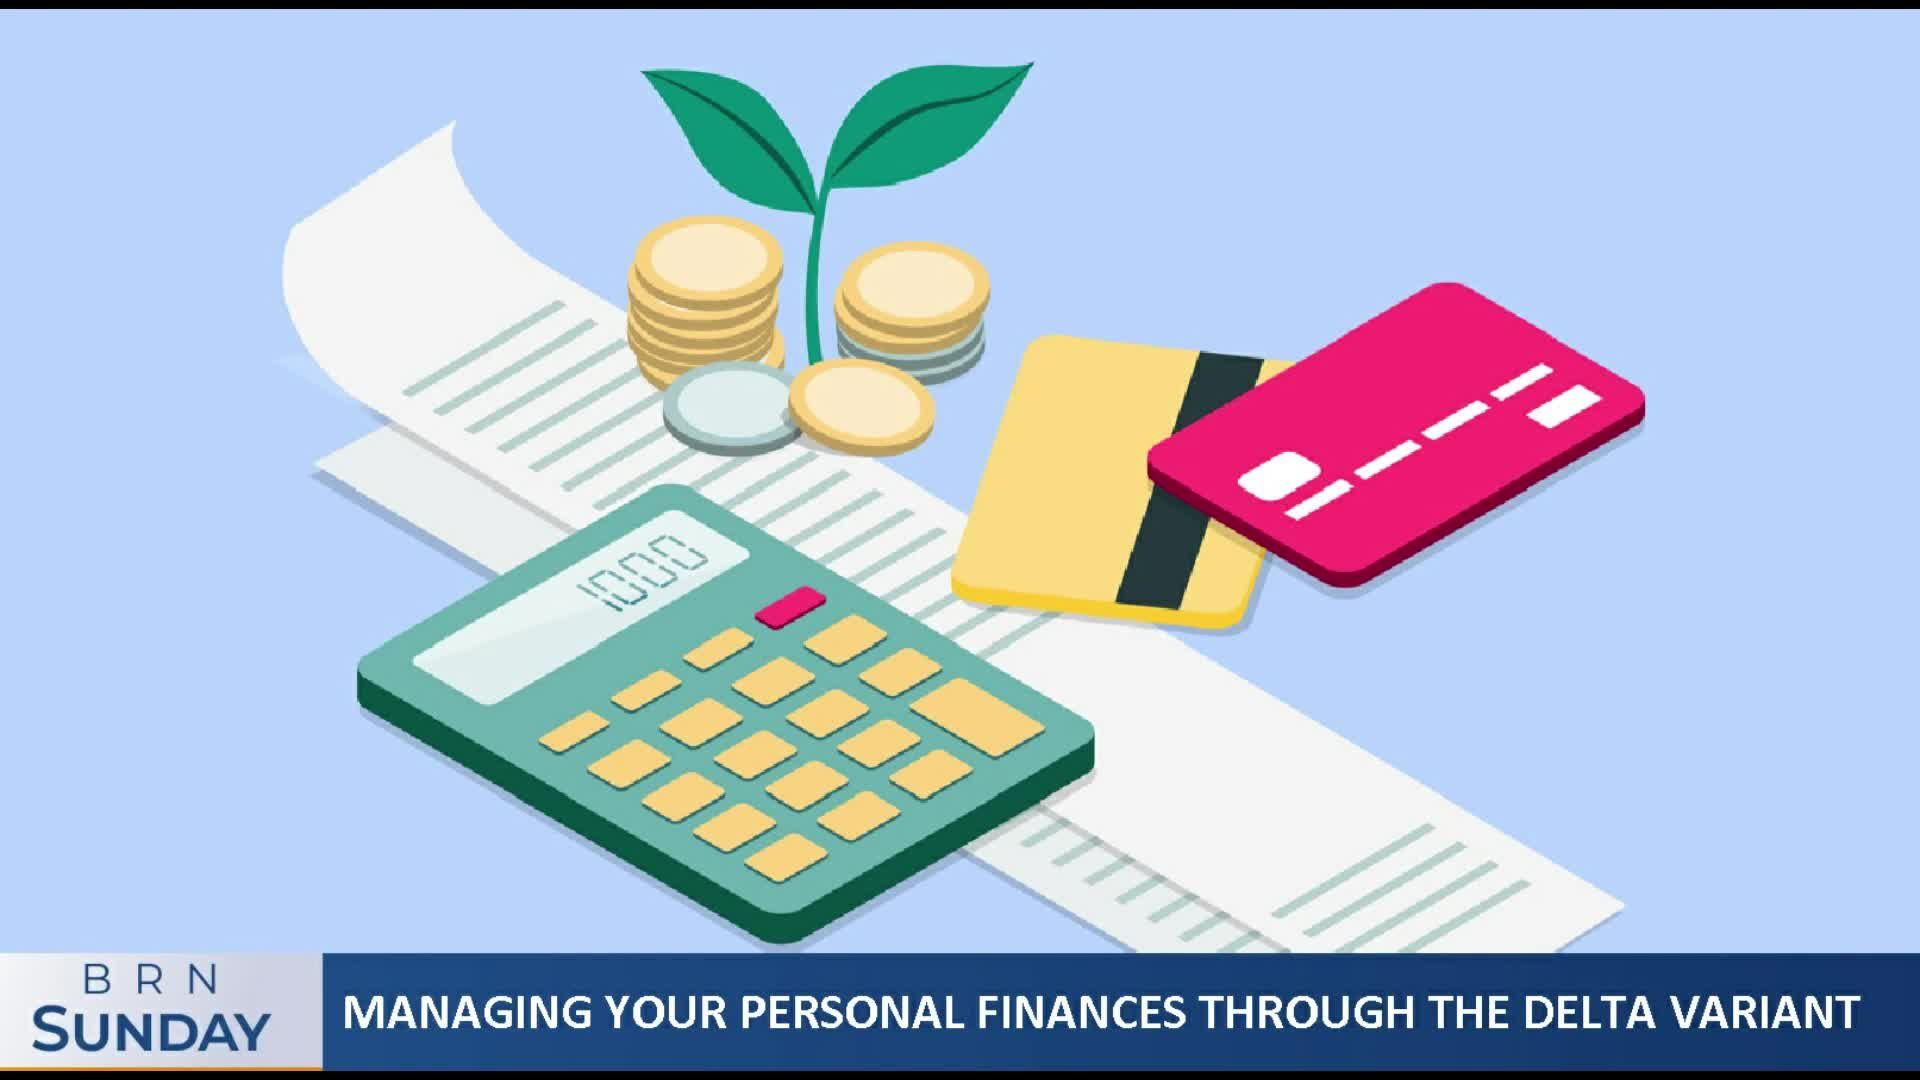 BRN Sunday |Managing your personal finances through the Delta variant & more